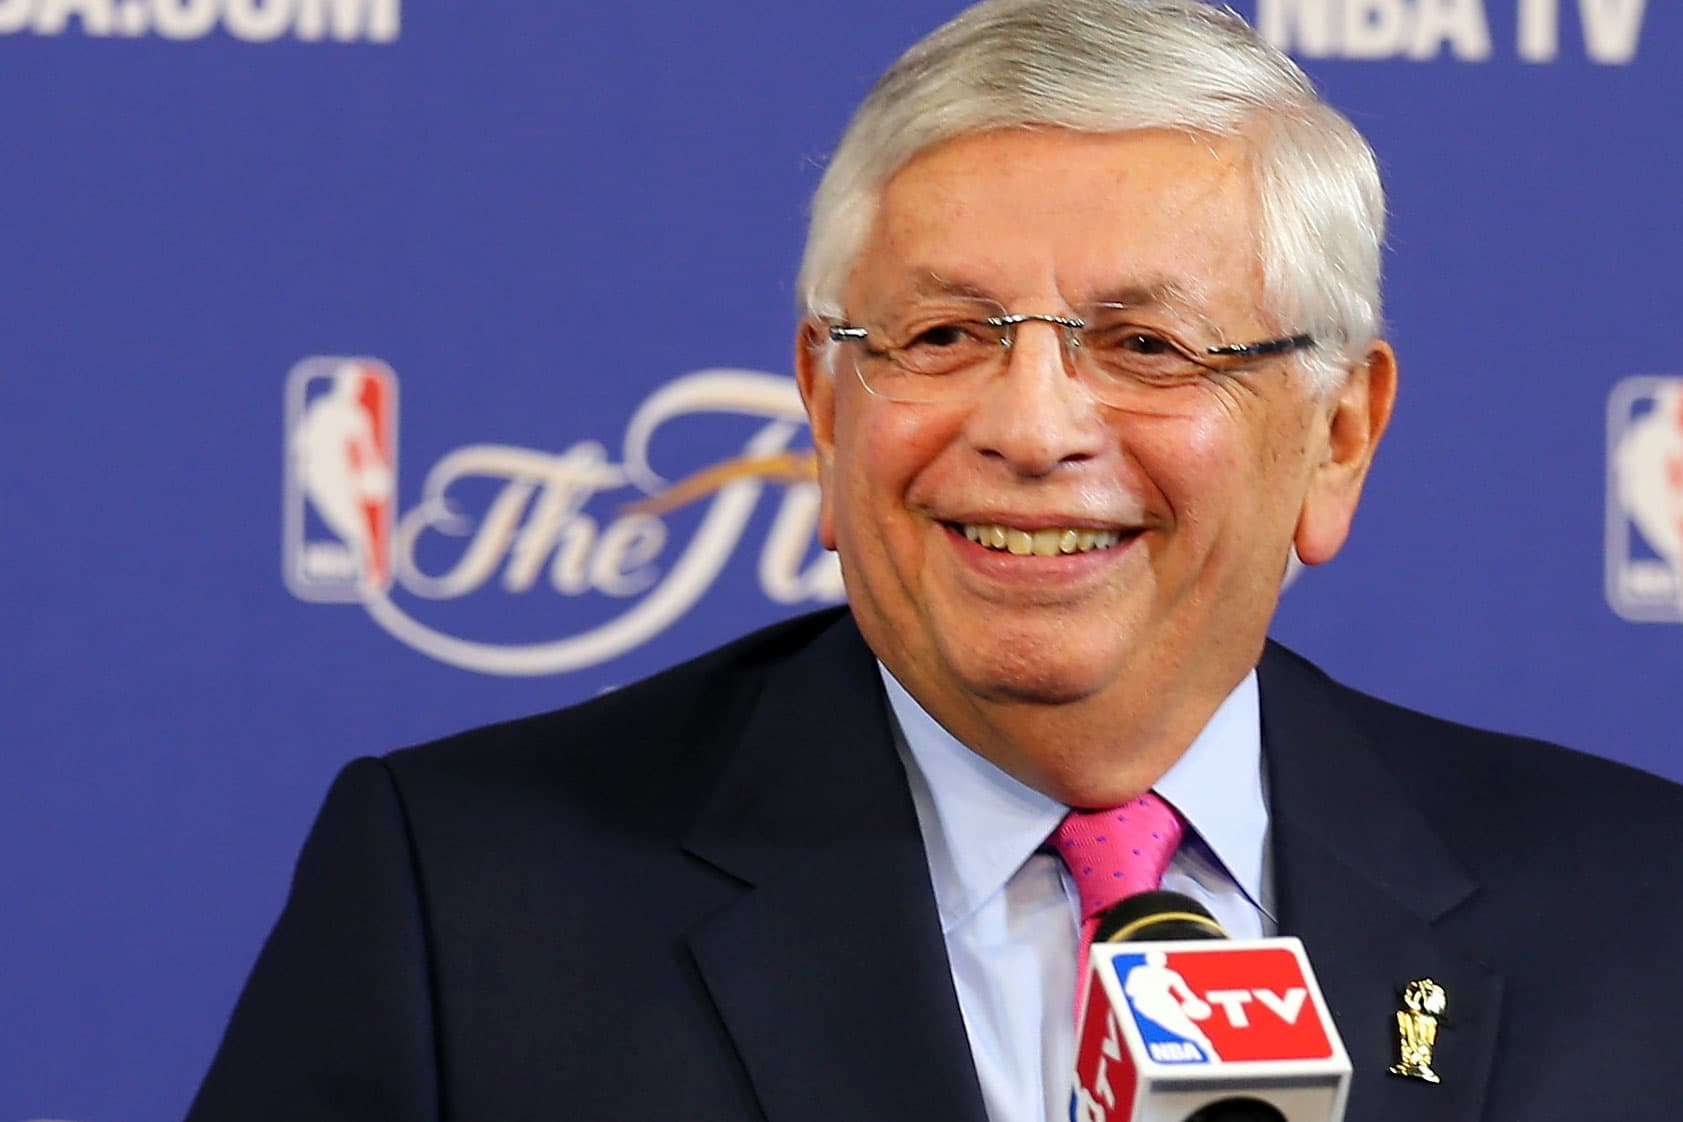 David Stern, former commissioner who drove the NBA's global expansion, dies at 77